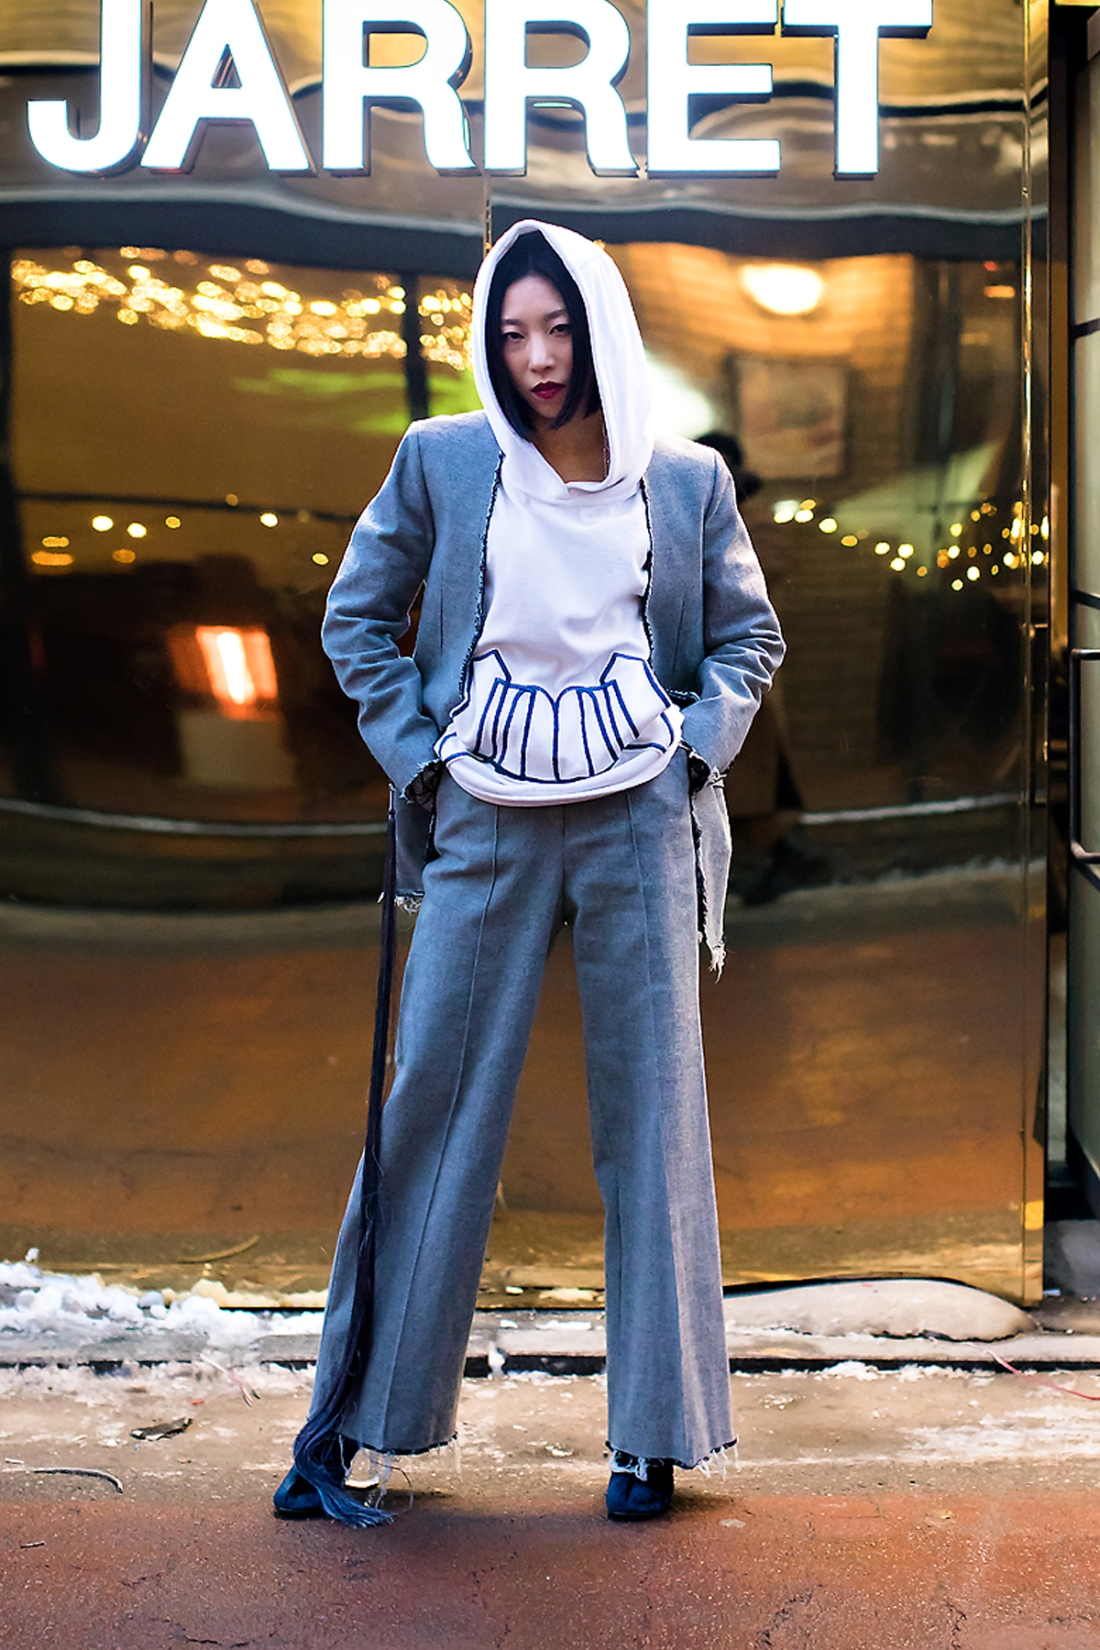 ri-akim-street-fashion-2017-in-seoul